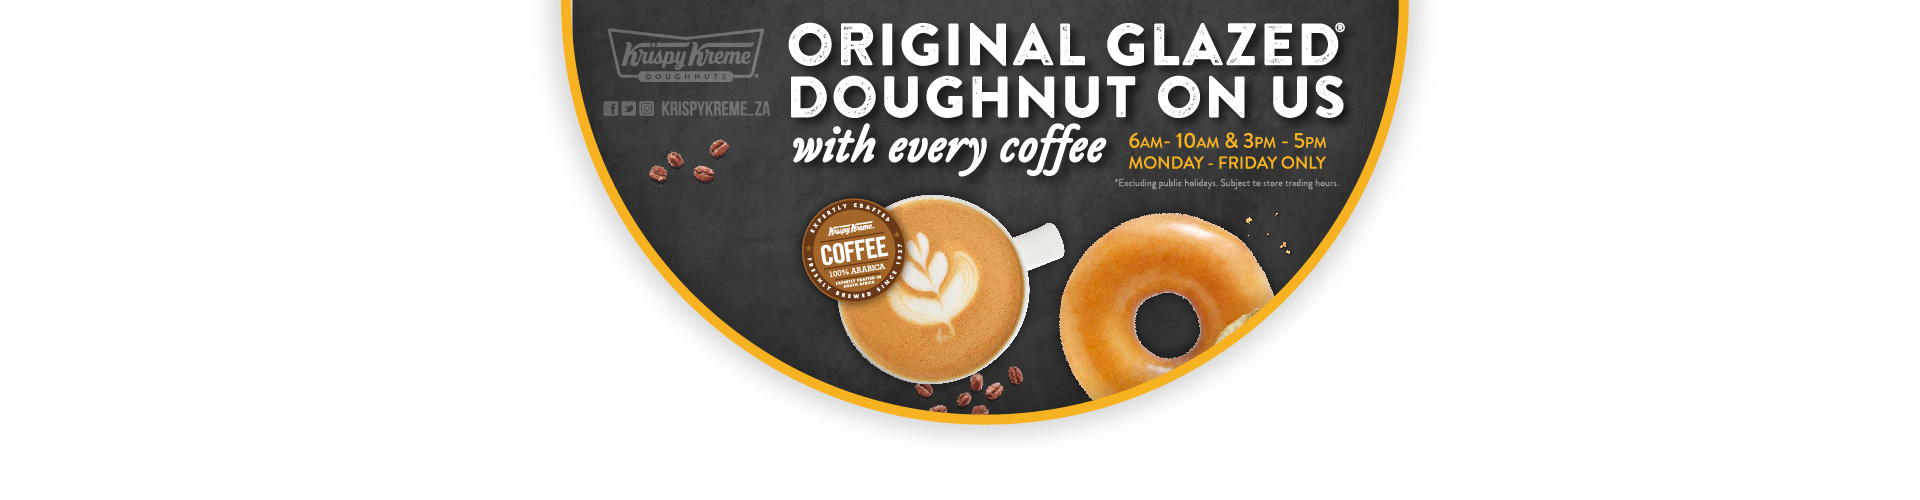 Donuts clipart krispy kreme doughnuts. South africa and coffees